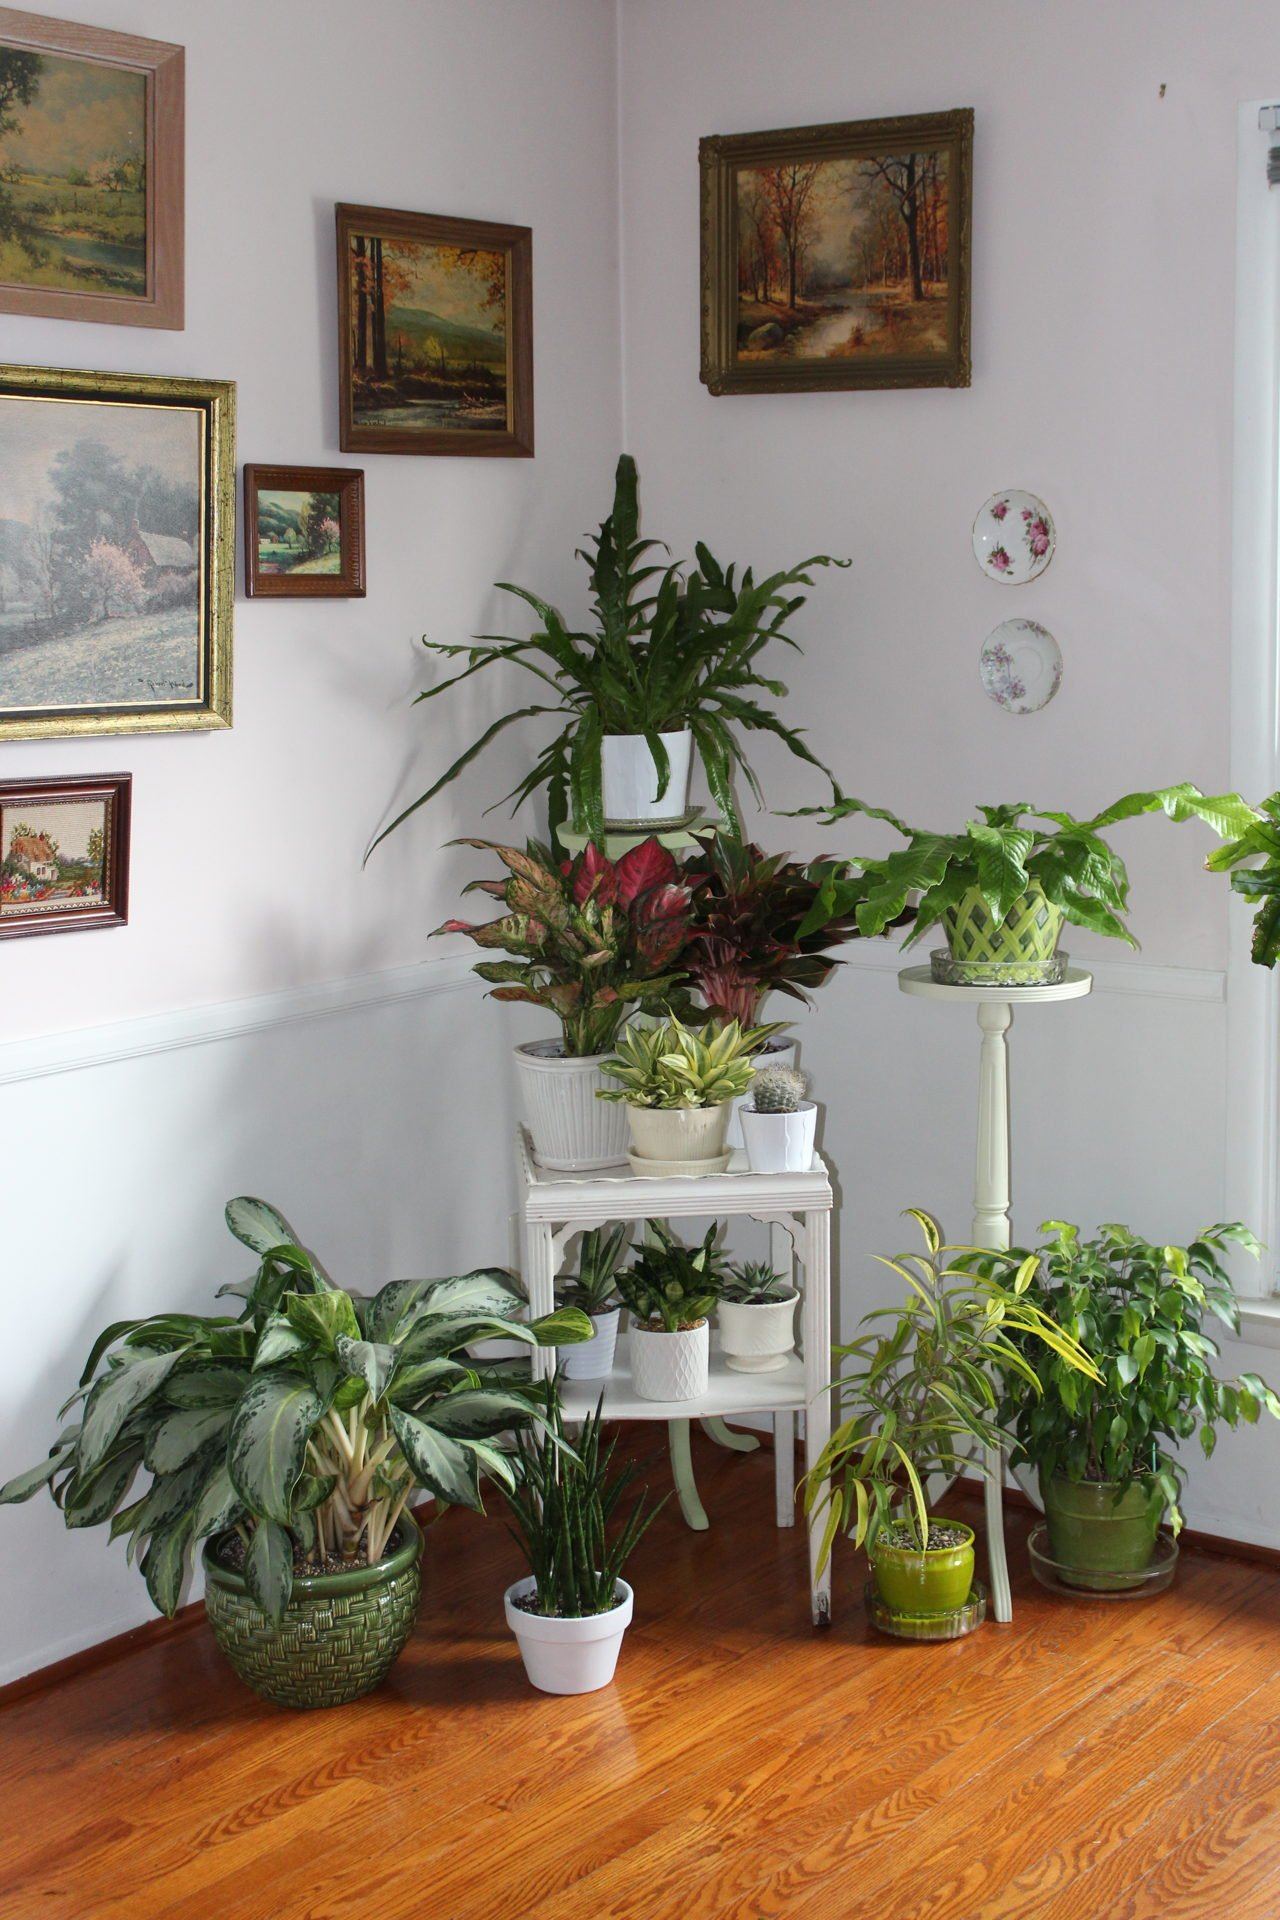 Staged houseplants